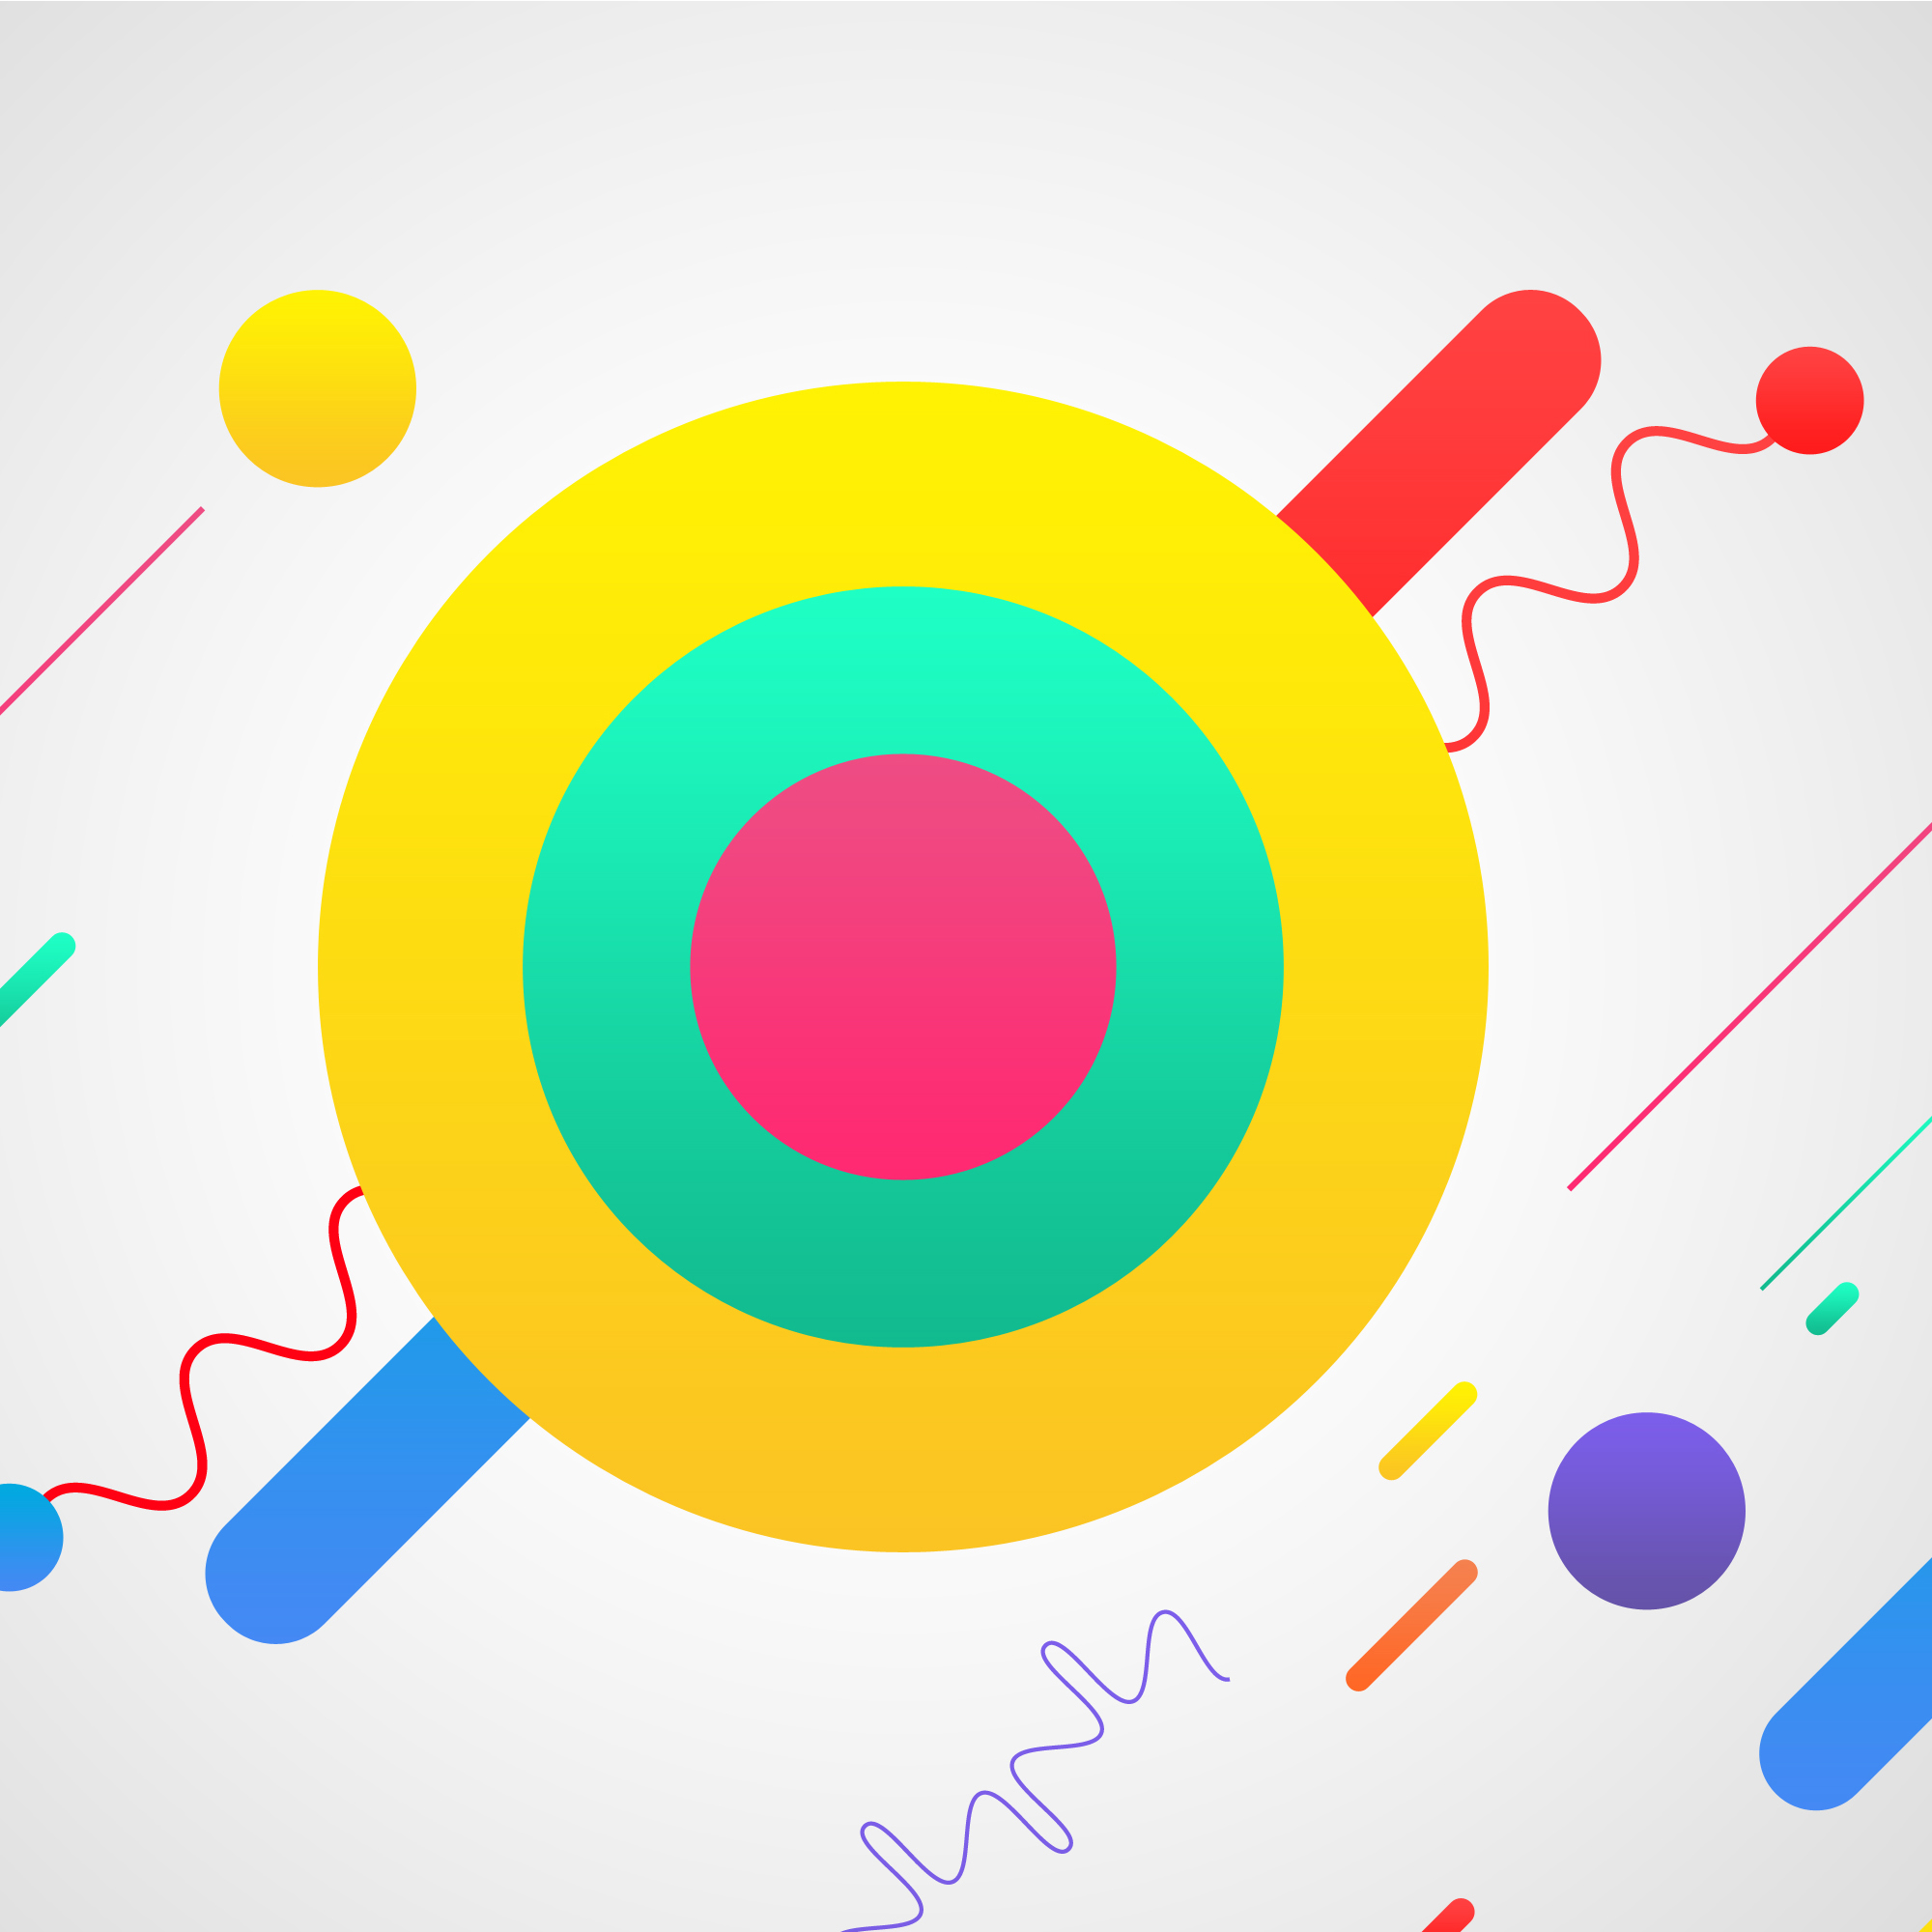 Multicolor shapes on white background